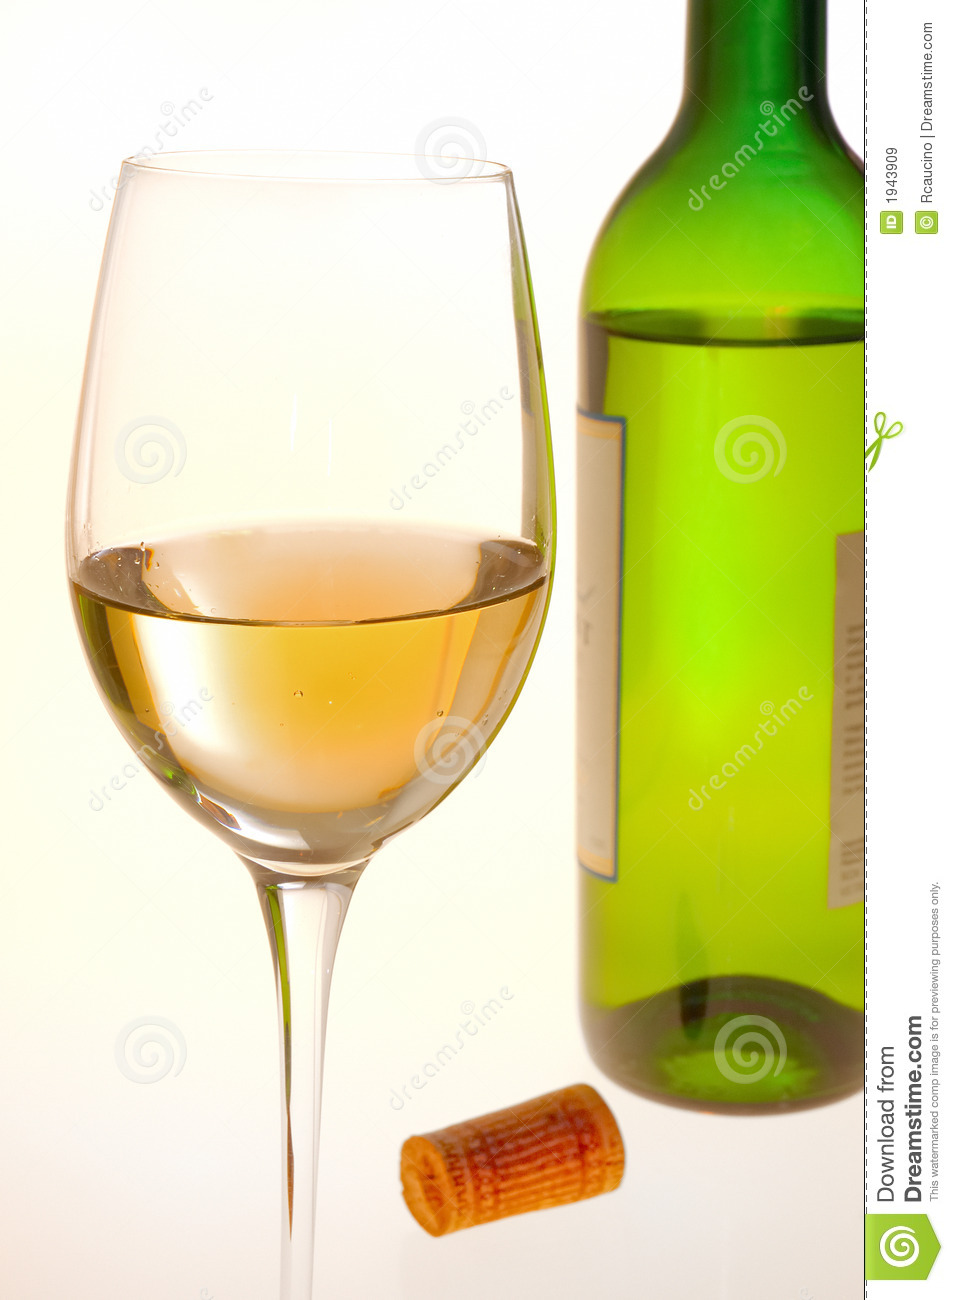 Wine glass bottle royalty free stock images image 1943909 for Wine bottle glass